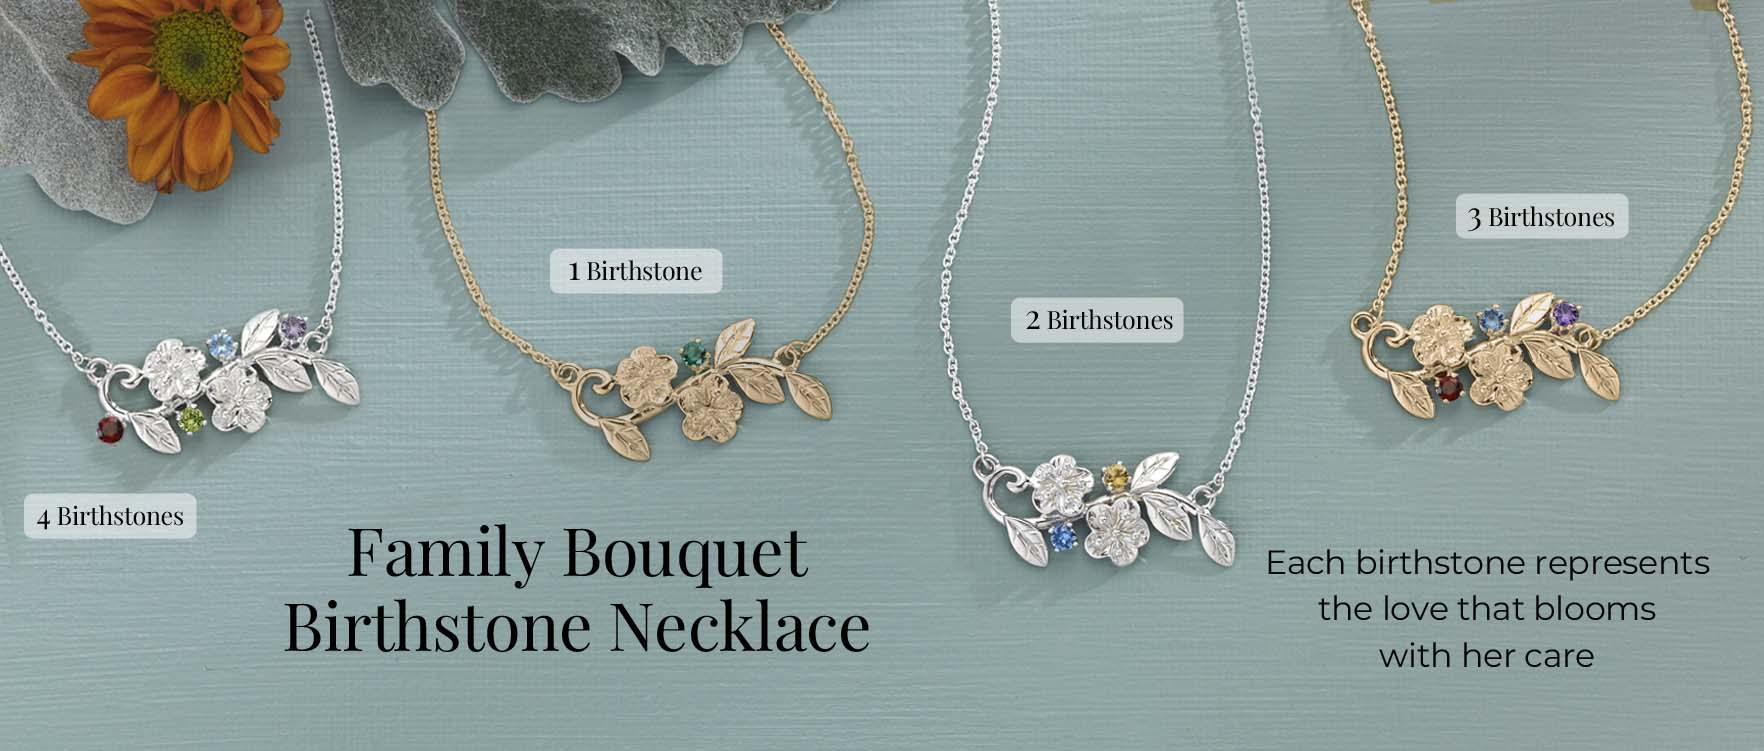 family-birthstone-bouquet-necklace.jpg